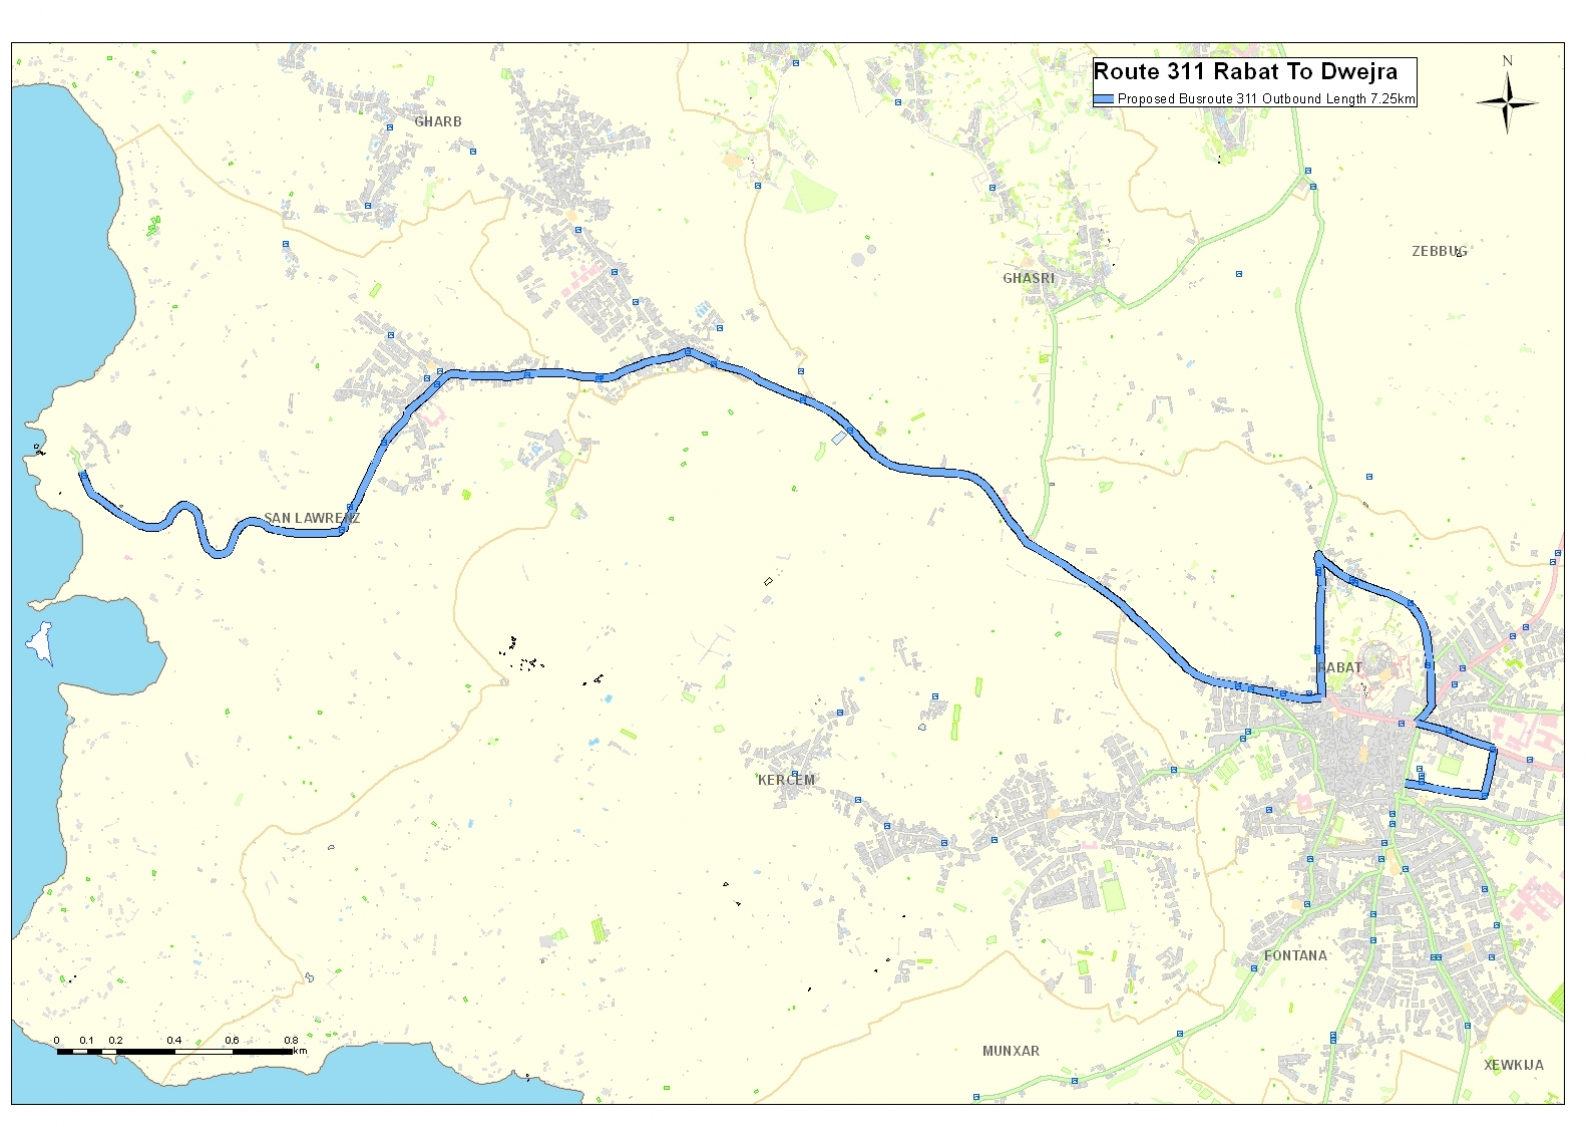 Land-current-network-routes-and-schedules-Gozo-22